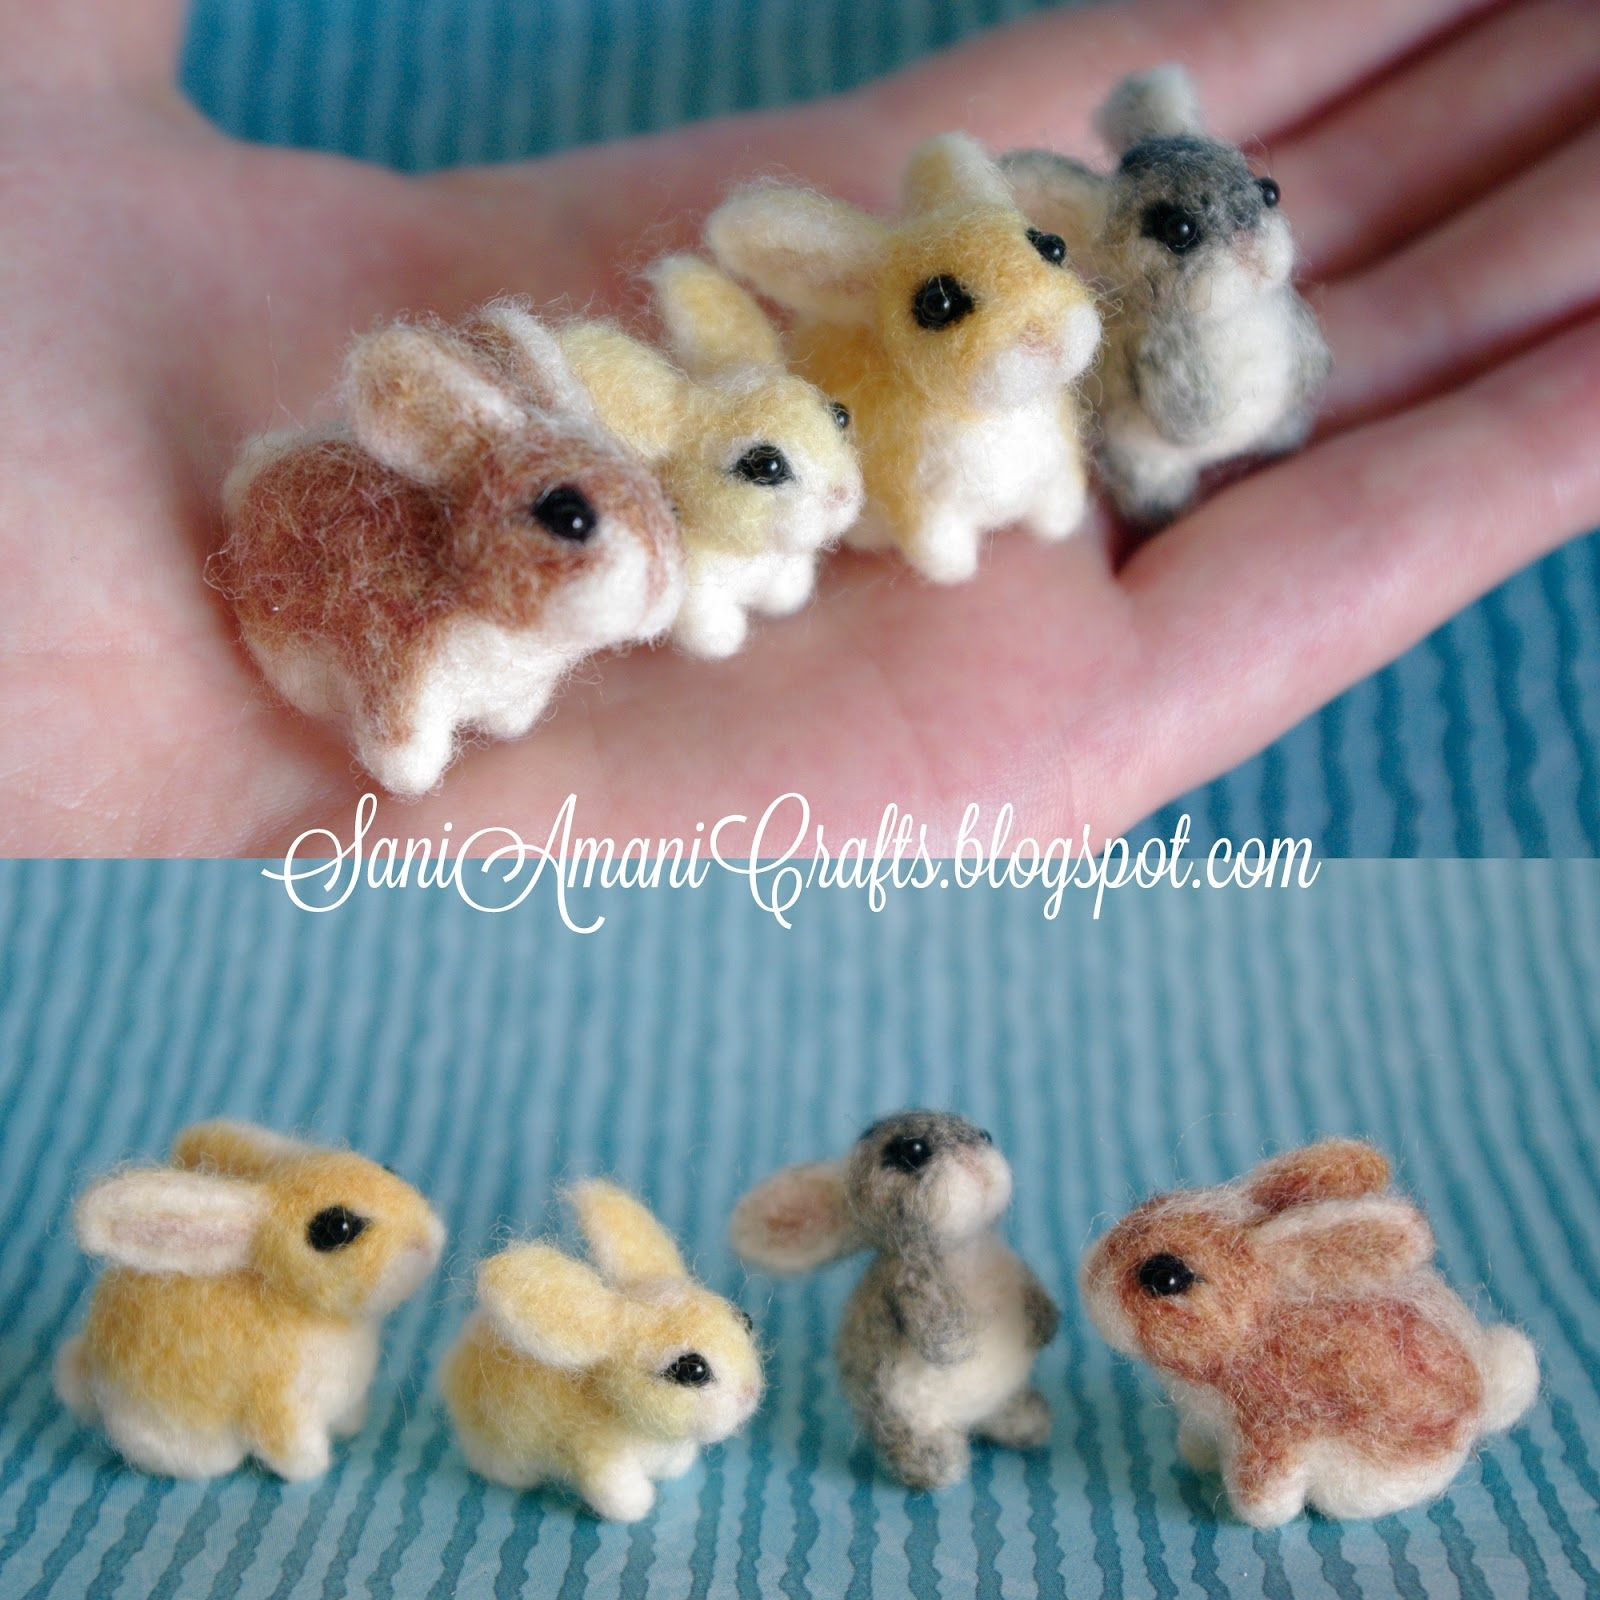 SaniAmaniCrafts needle felting, needle felted animals, miniature animals, pet portrait, handmade soft sculptures #needlefeltedanimals